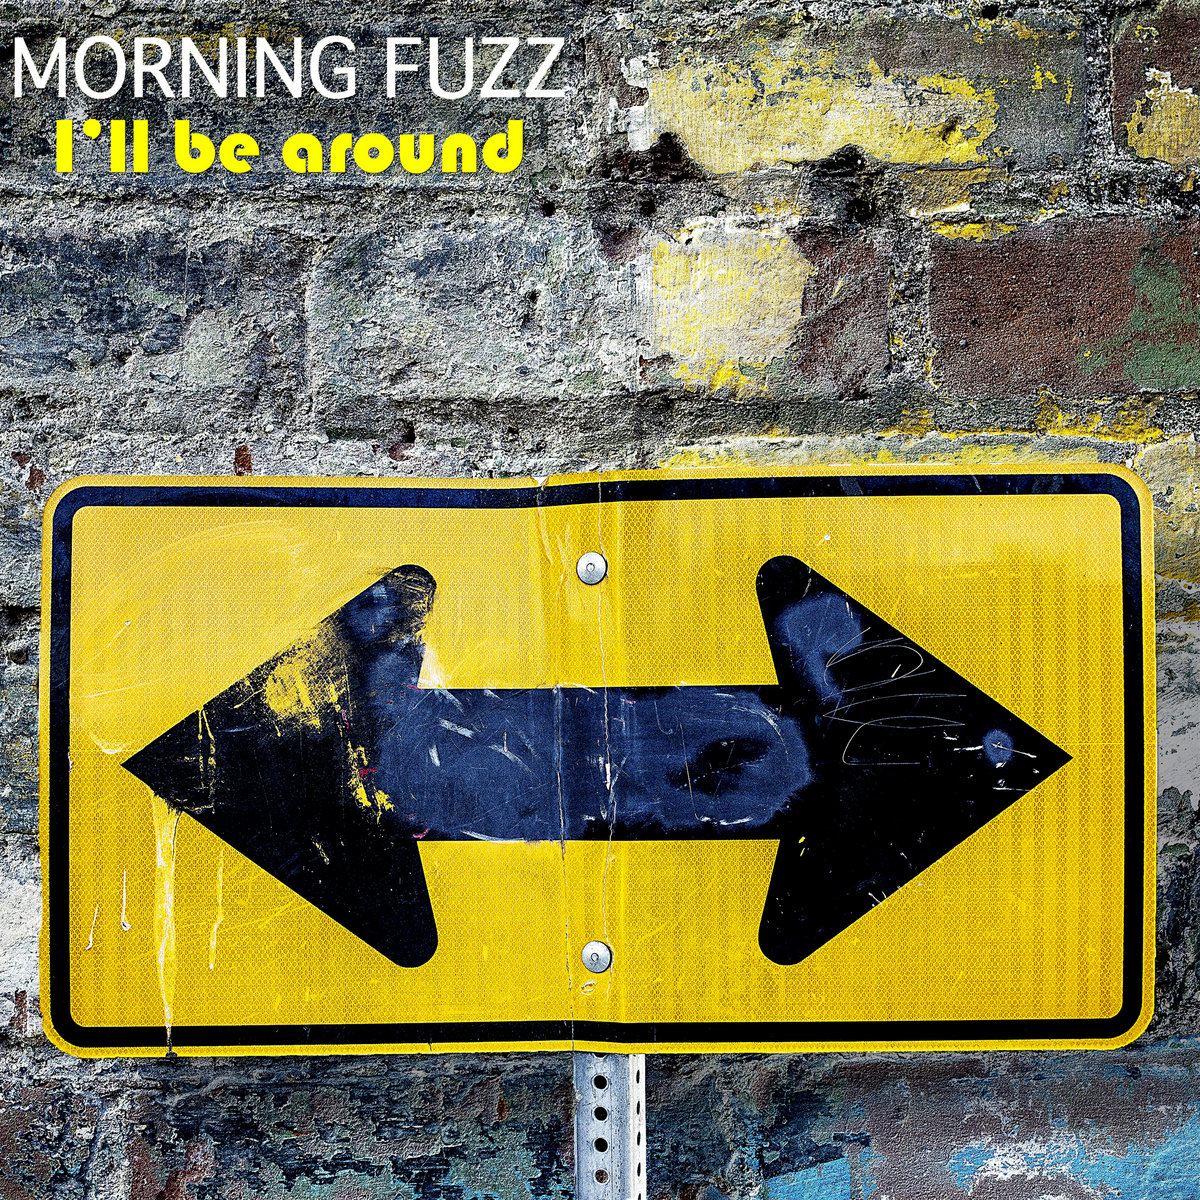 I'll Be Around by Morning Fuzz